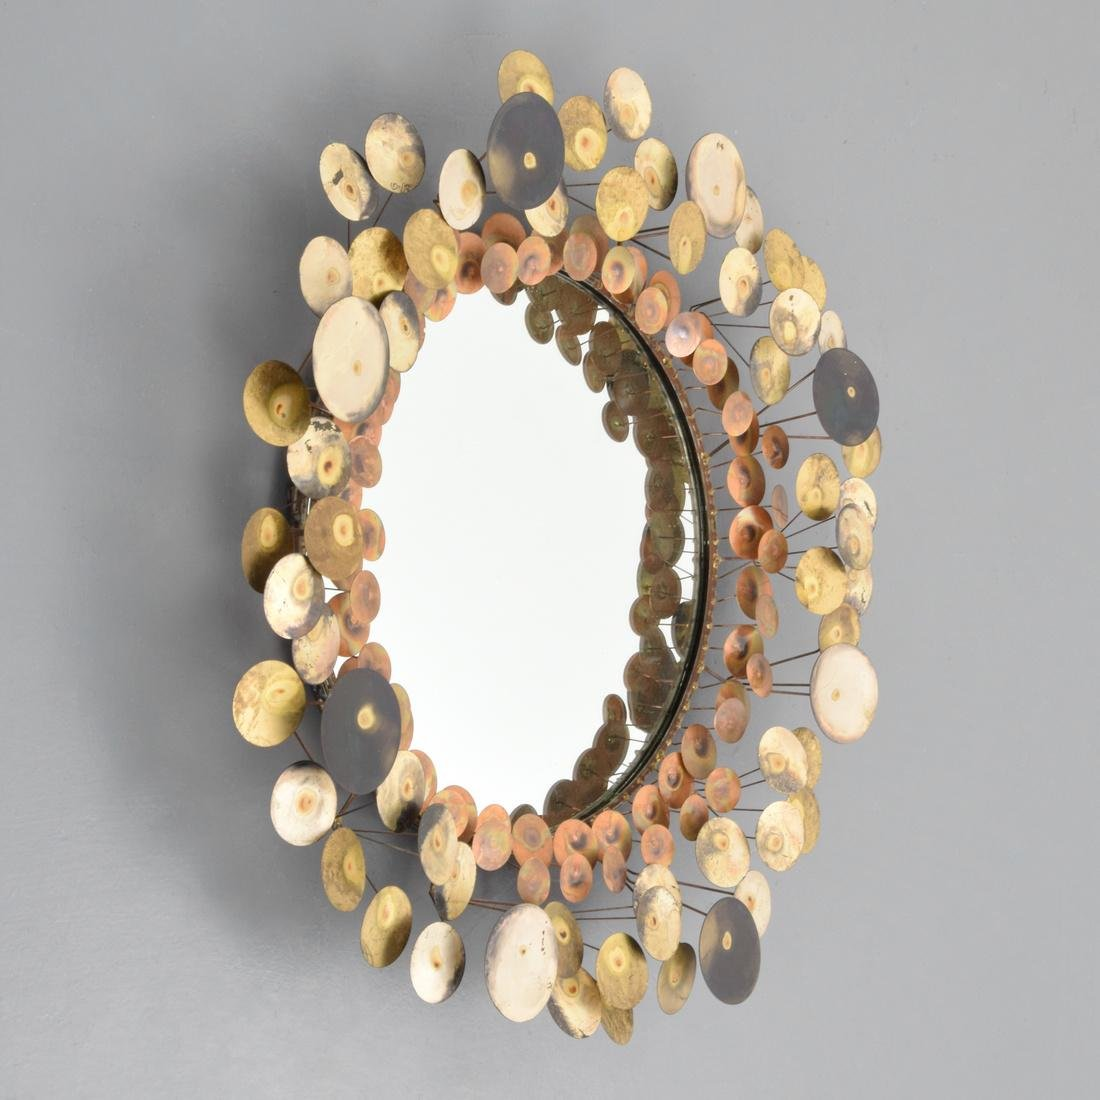 Curtis Jere RAINDROPS Mirror